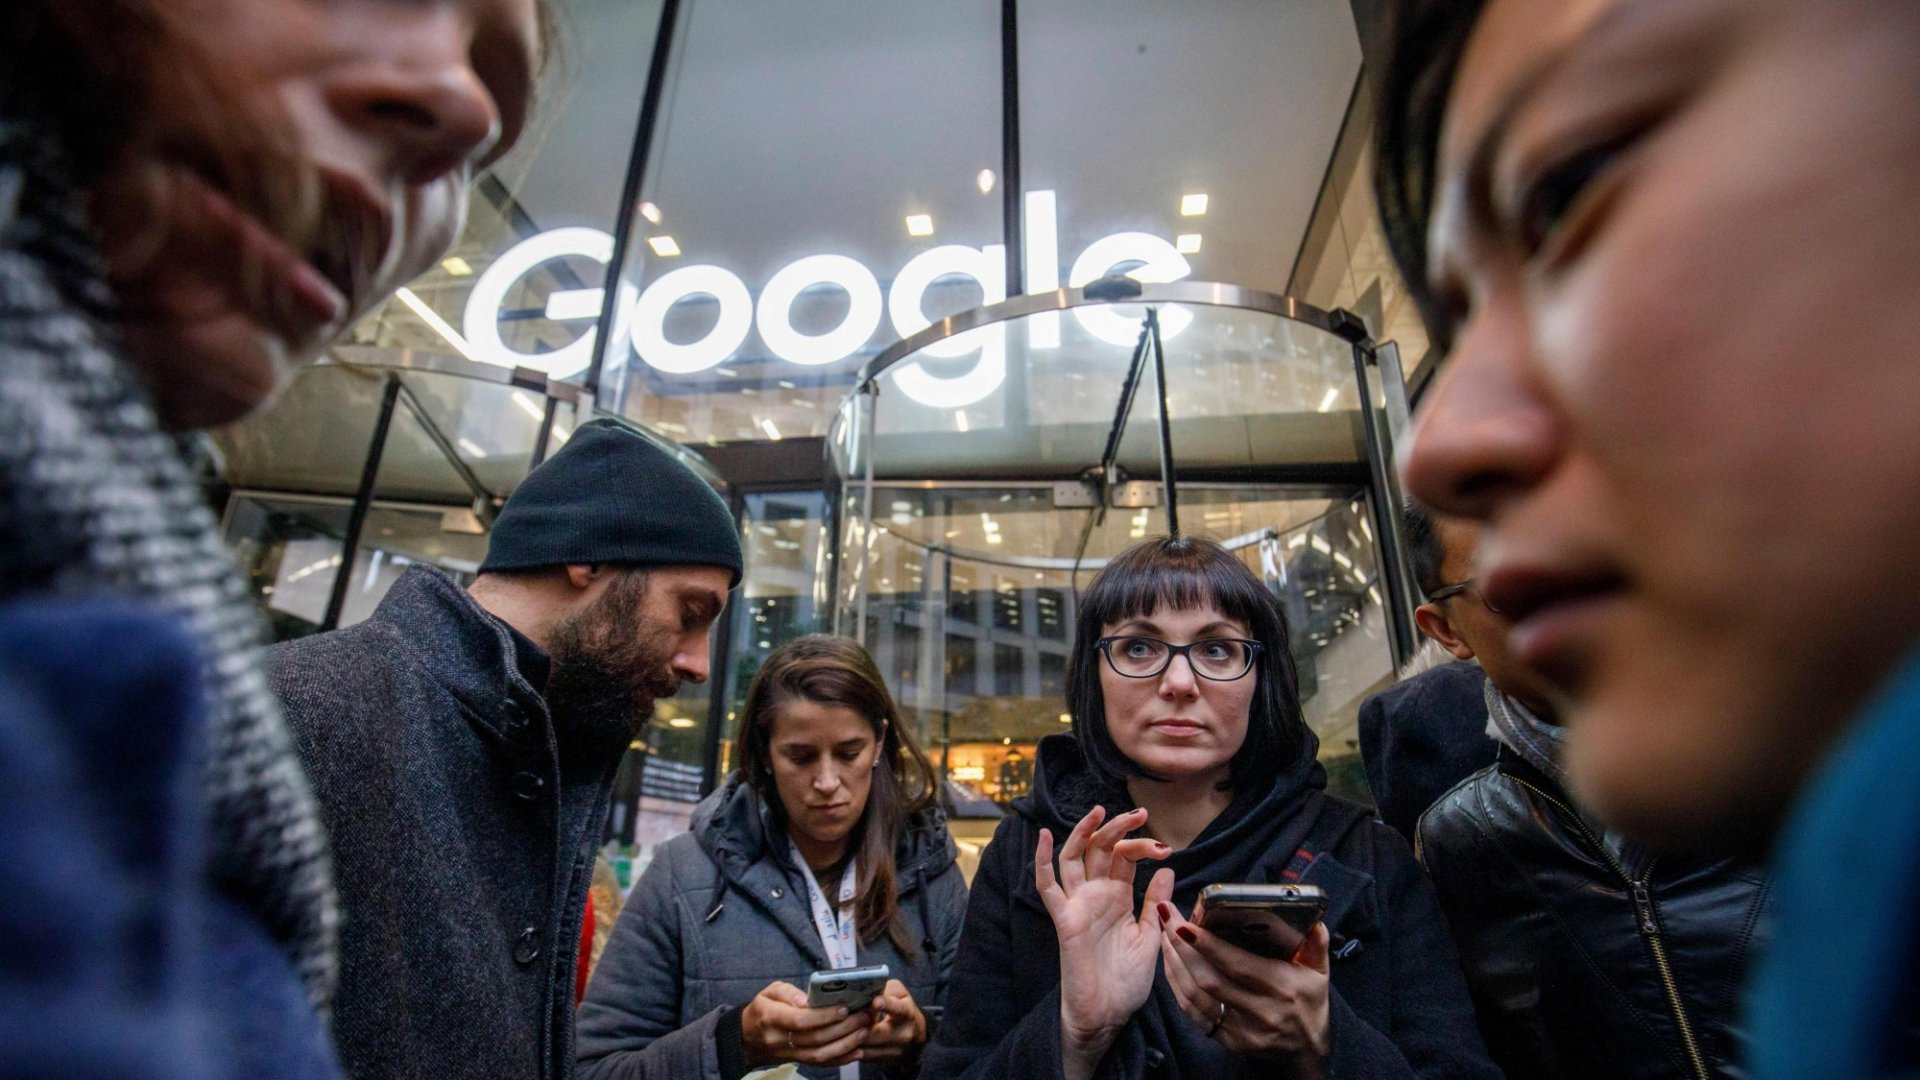 Google's Inaction on 'Crisis' Highlights Cost of Not Listening to Employees